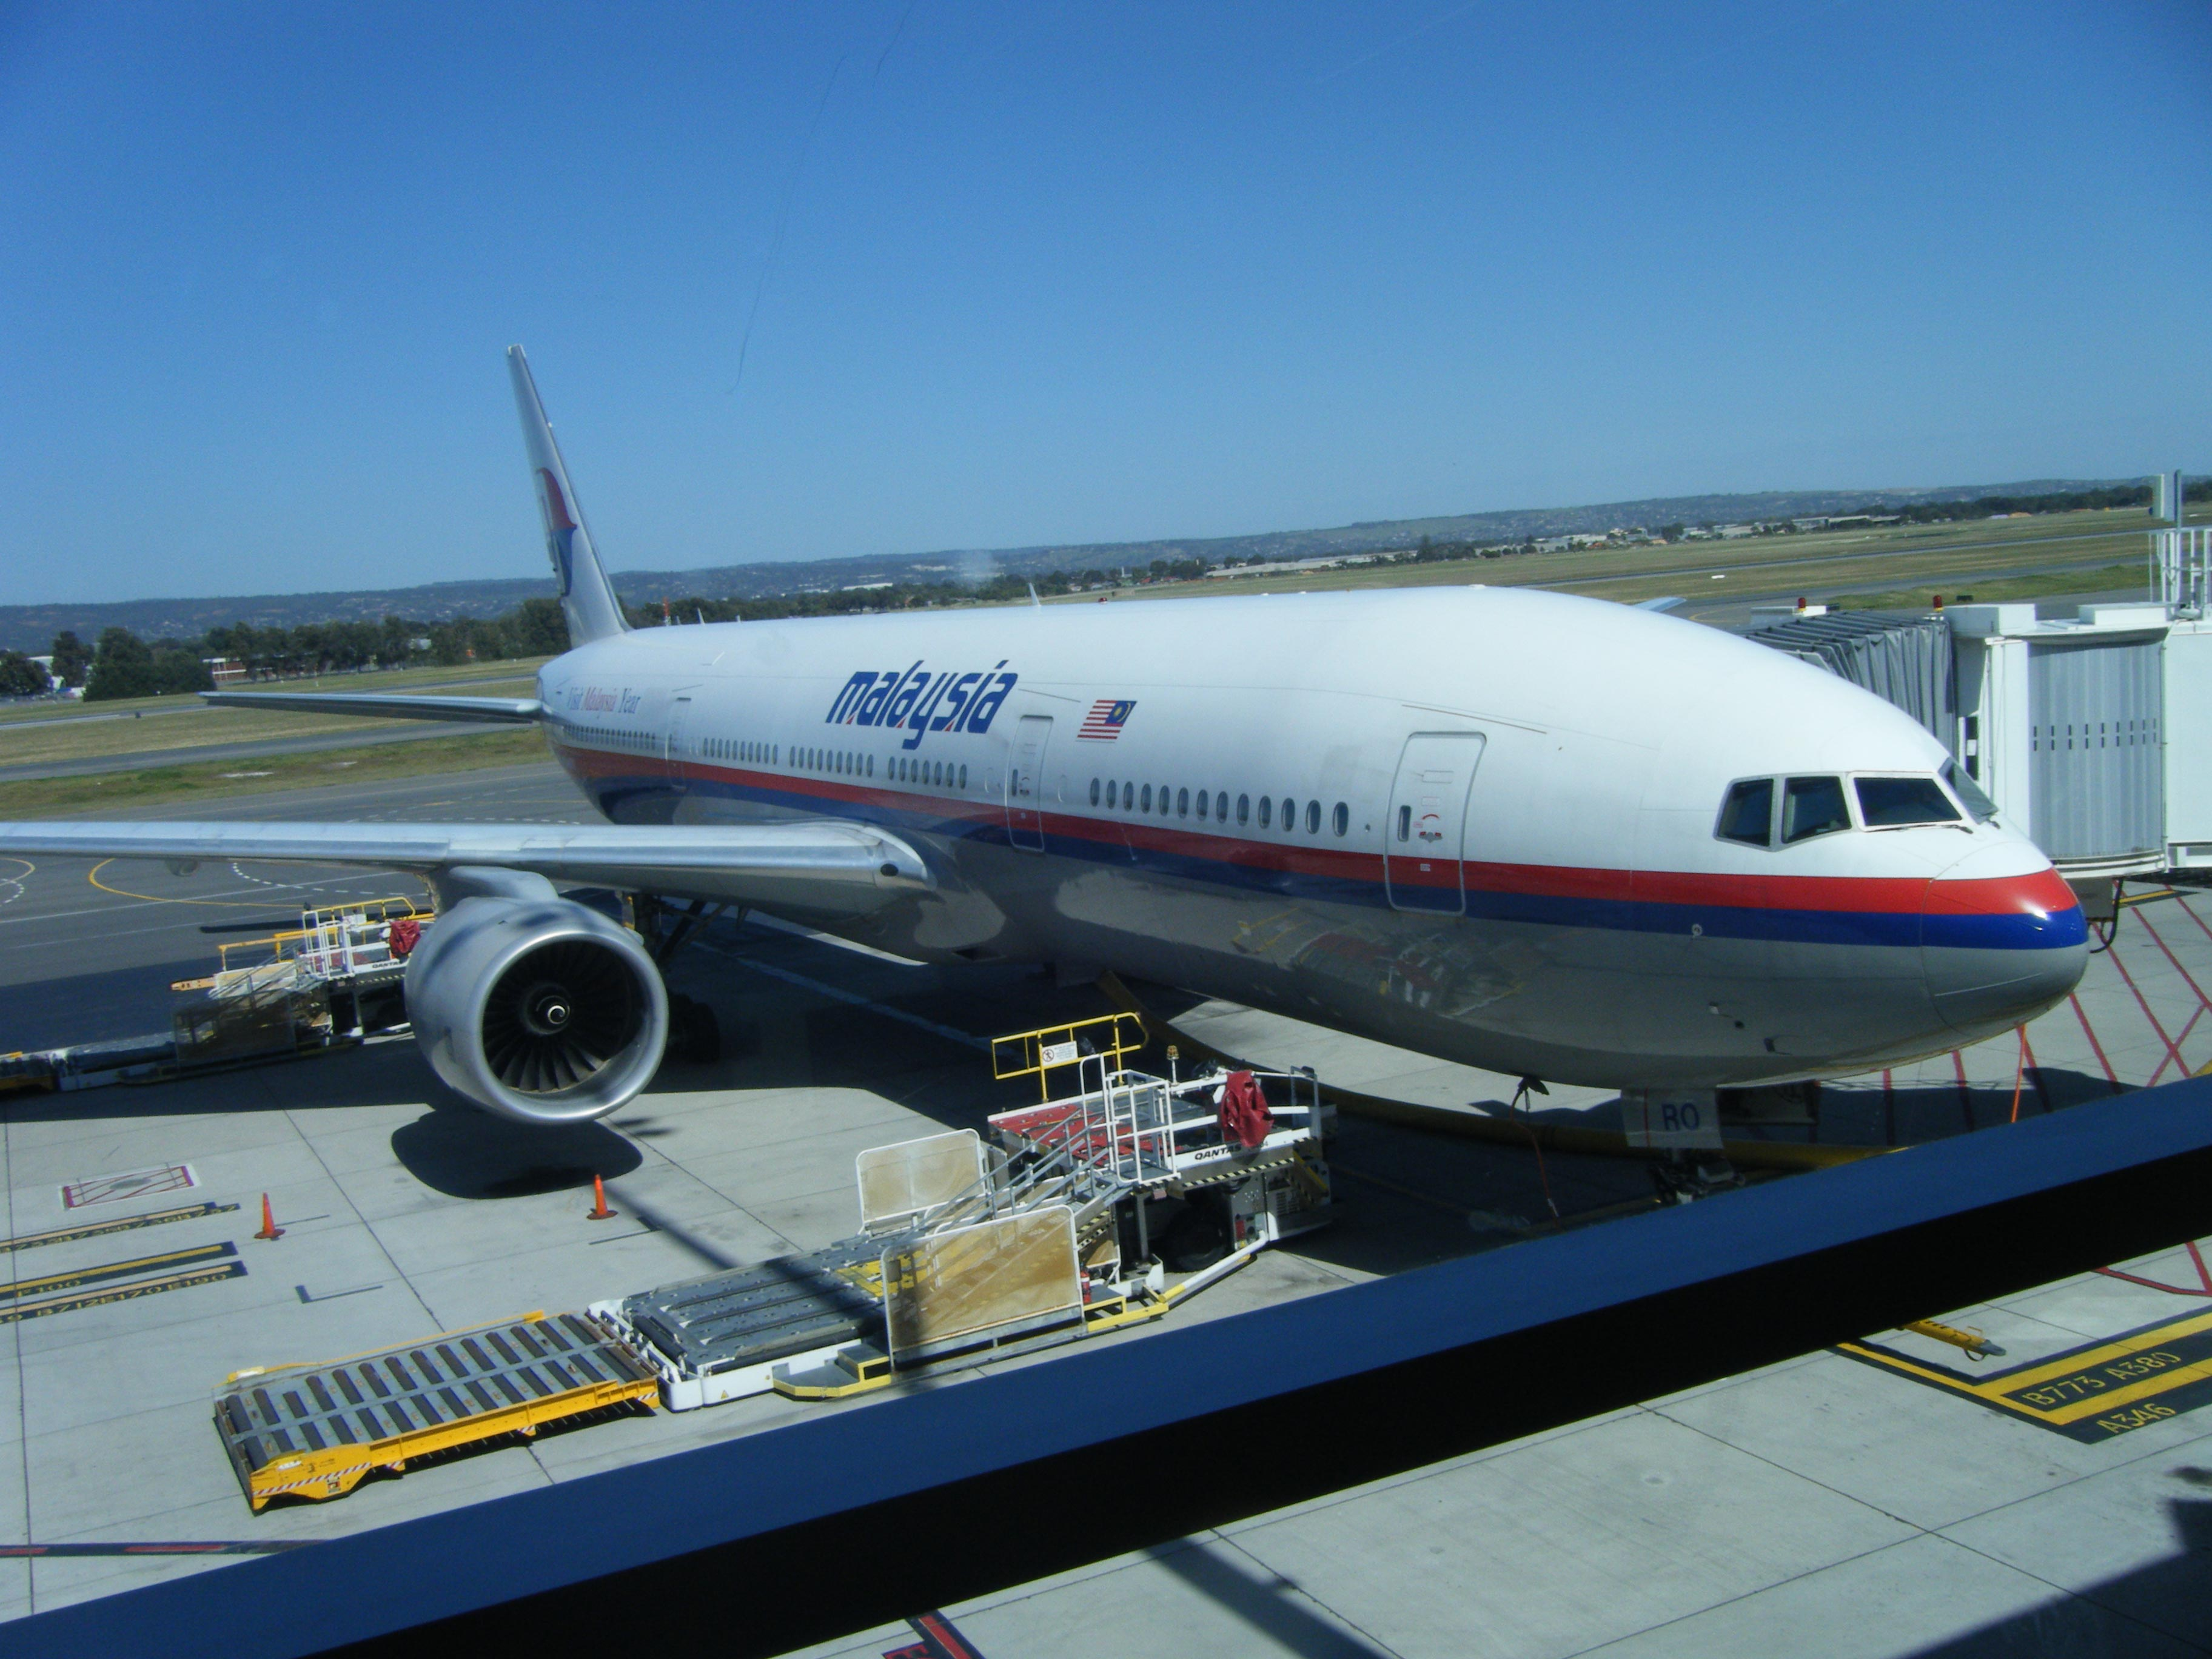 Malaysia airlines boeing 777 flight mh138 docked at adelaide airport